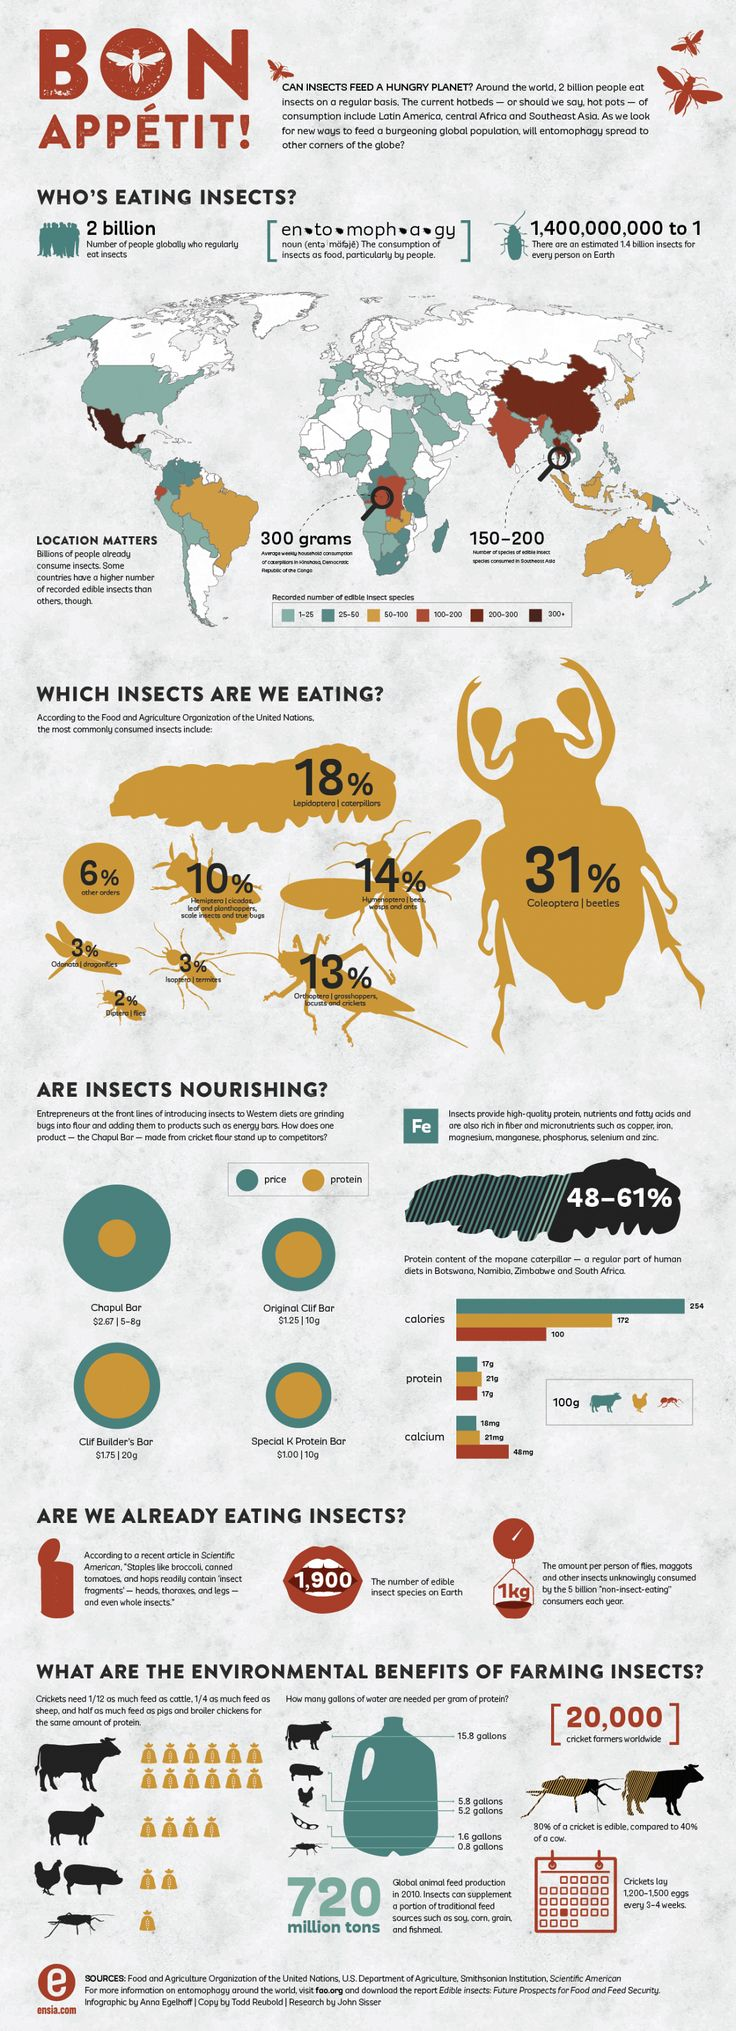 25+ best ideas about Edible Insects on Pinterest.